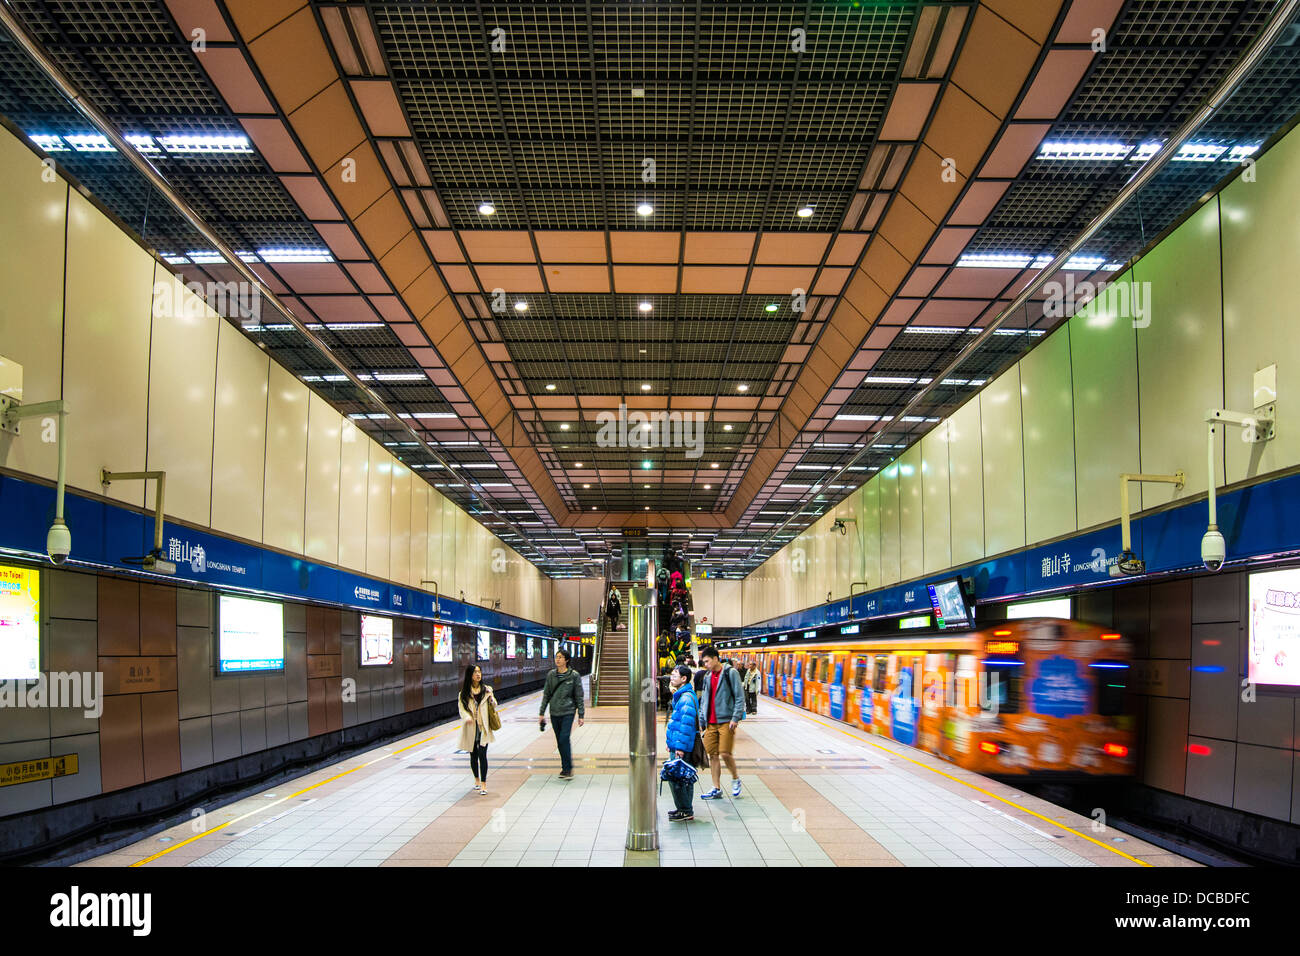 Longshan Temple Station in Taipei, Taiwan. Stock Photo